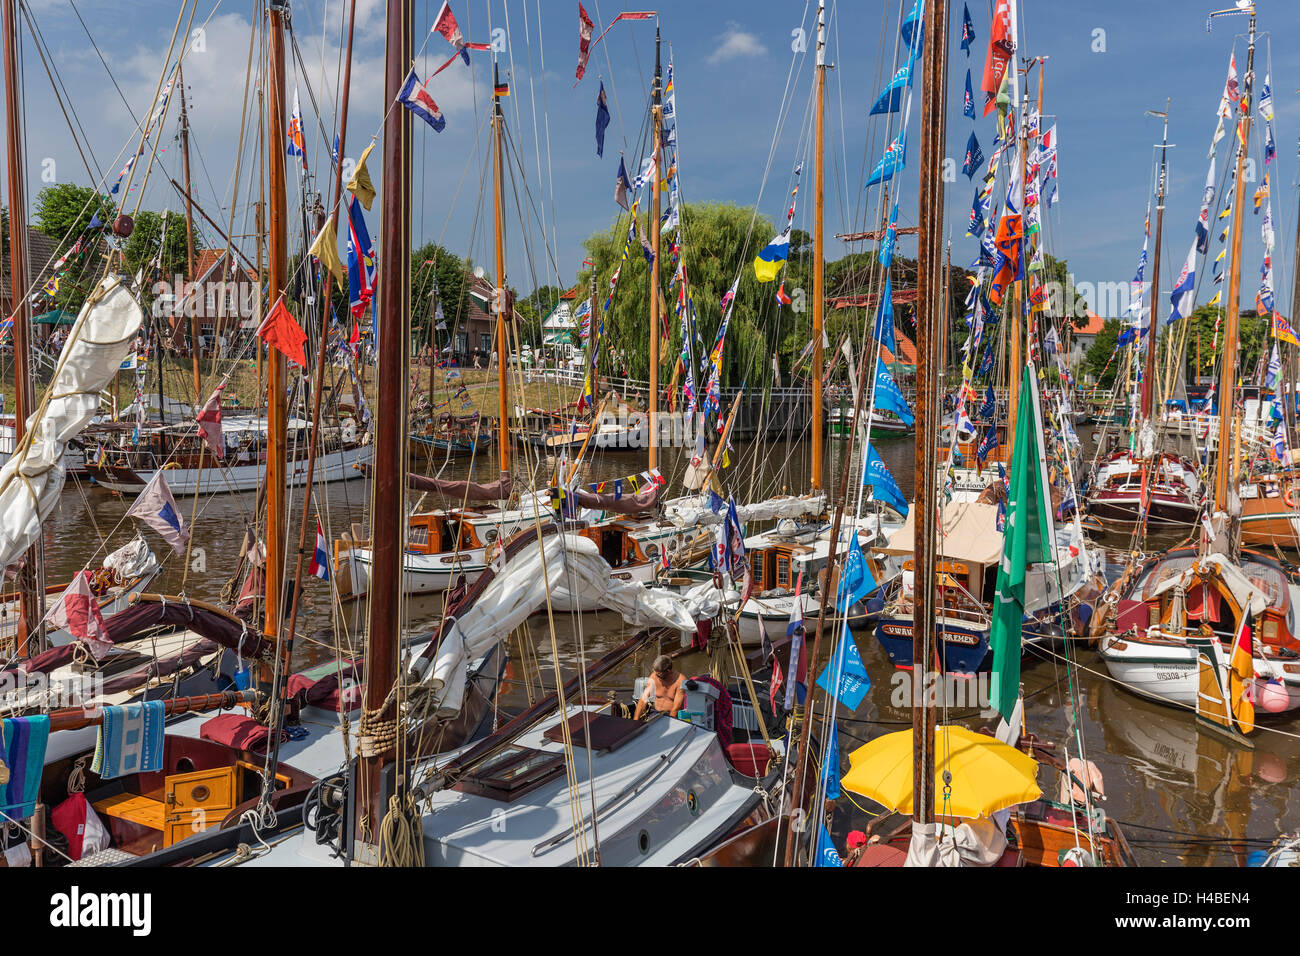 Wattensail, traditional ship gathering, detail, decorated flat bottom sailship in the museum harbour of Carolinensiel, - Stock Image